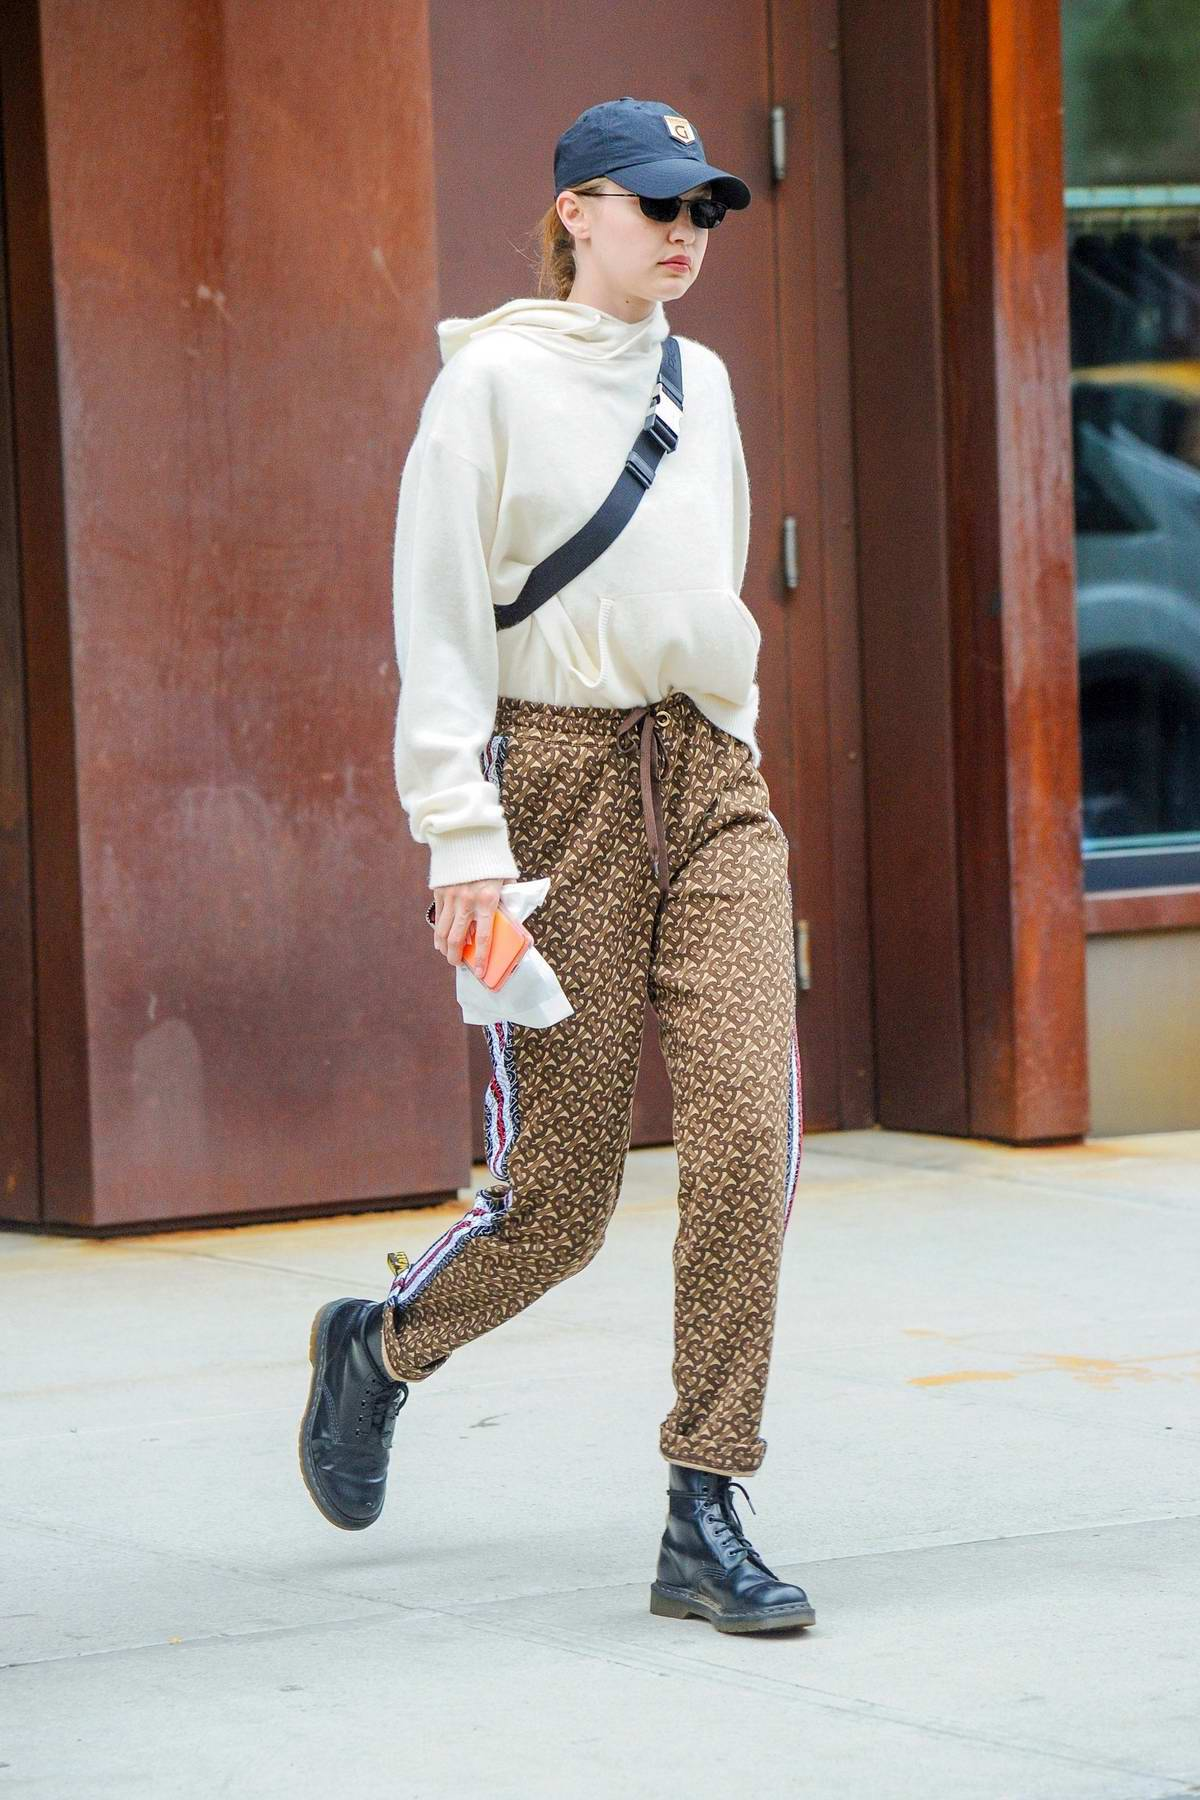 Gigi Hadid looks stylish in a Burberry pants paired with Doc Marten boots and a Prada side bag as she heads out in New York City